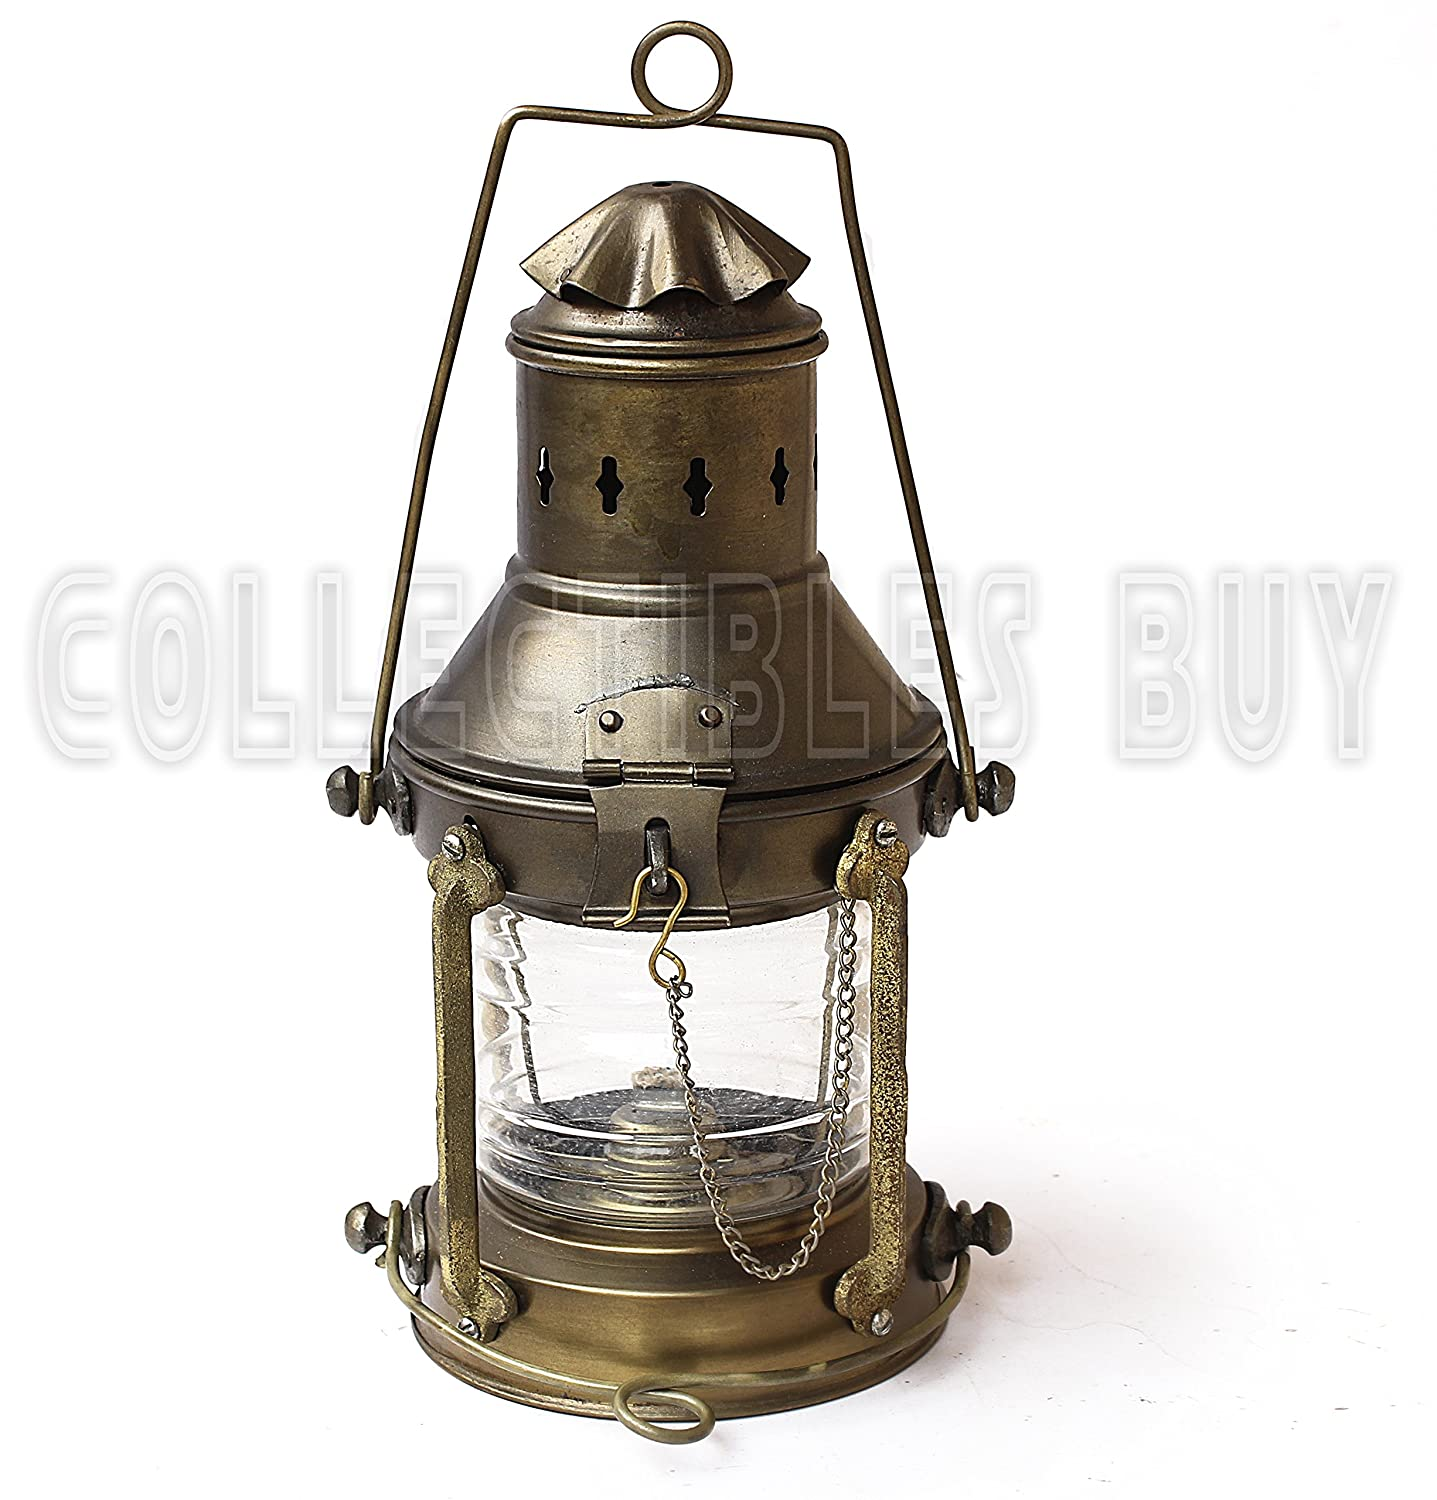 Coastal Christmas Tablescape Décor -  Antique brass vintage hanging oil or kerosene ship lantern